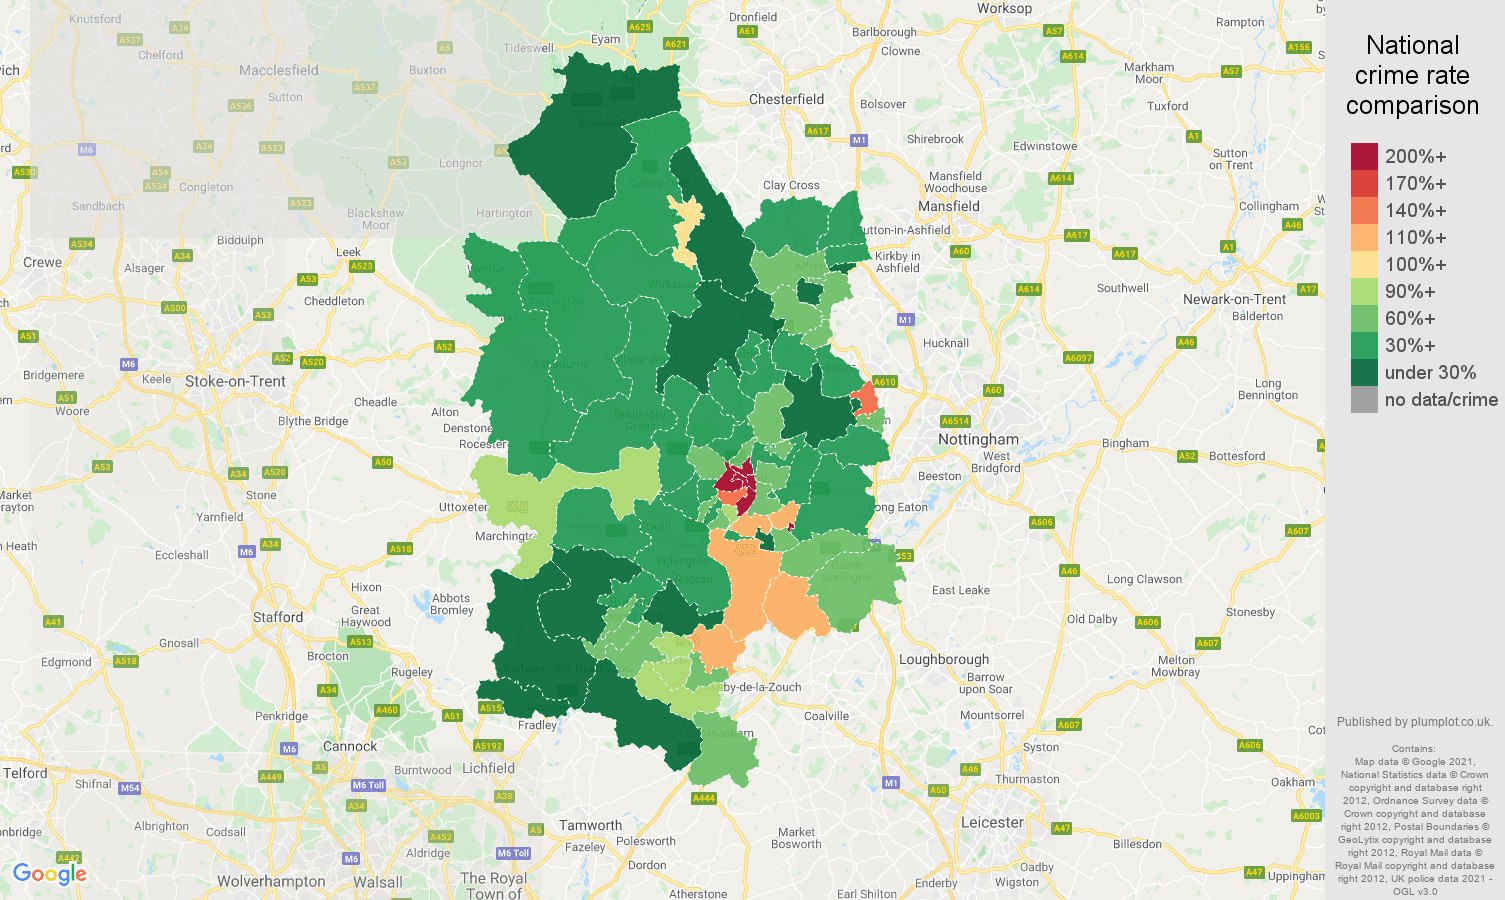 Derby drugs crime rate comparison map